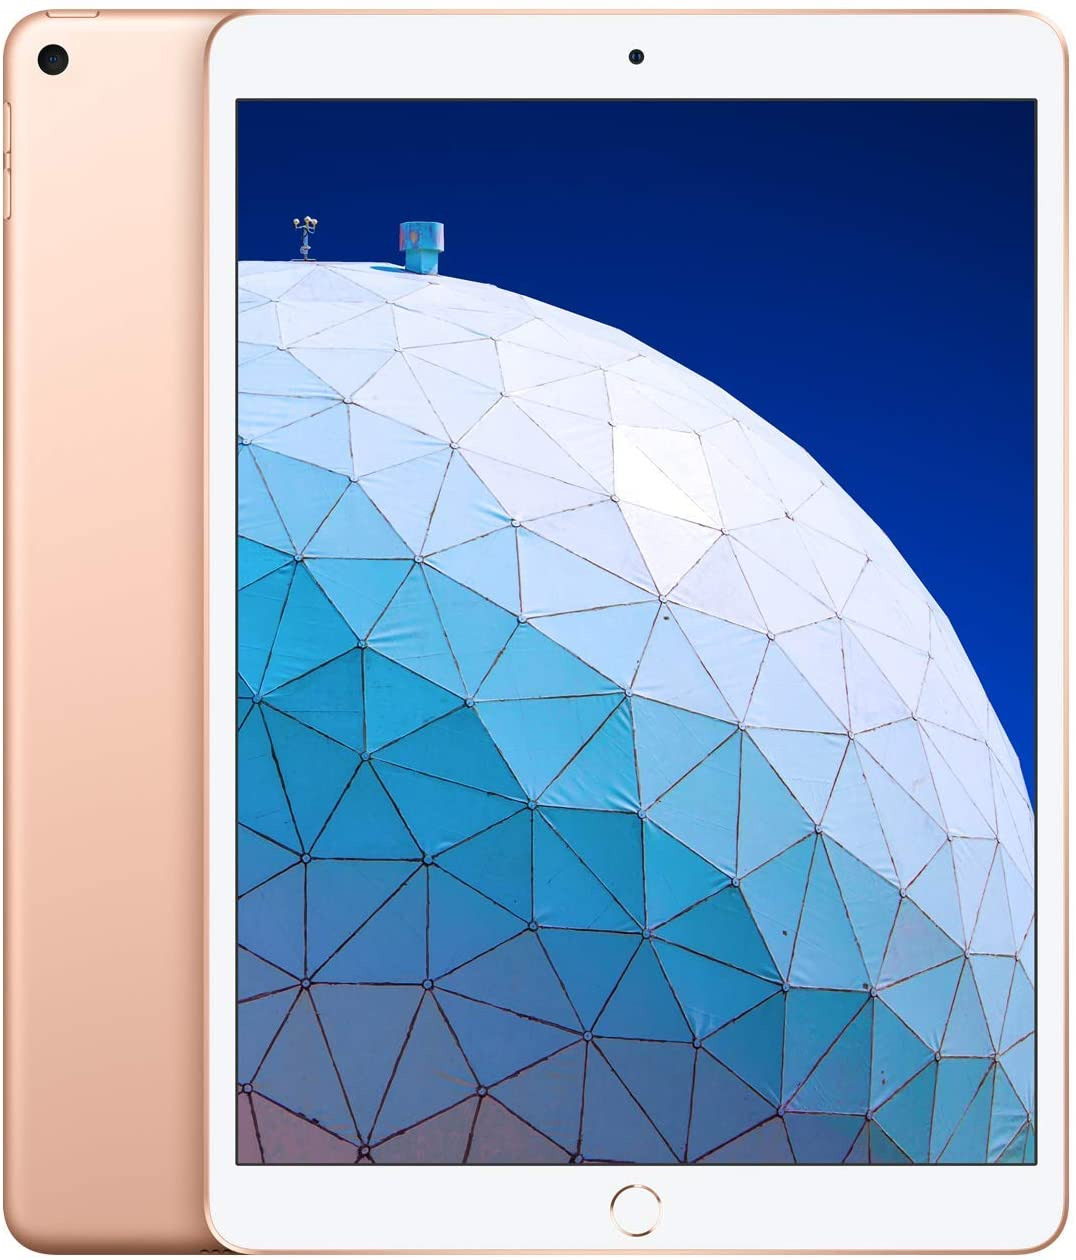 Apple iPad Air (de 10,5 pulgadas y 64 GB con Wi-Fi) - Oro (Ultimo Modelo)